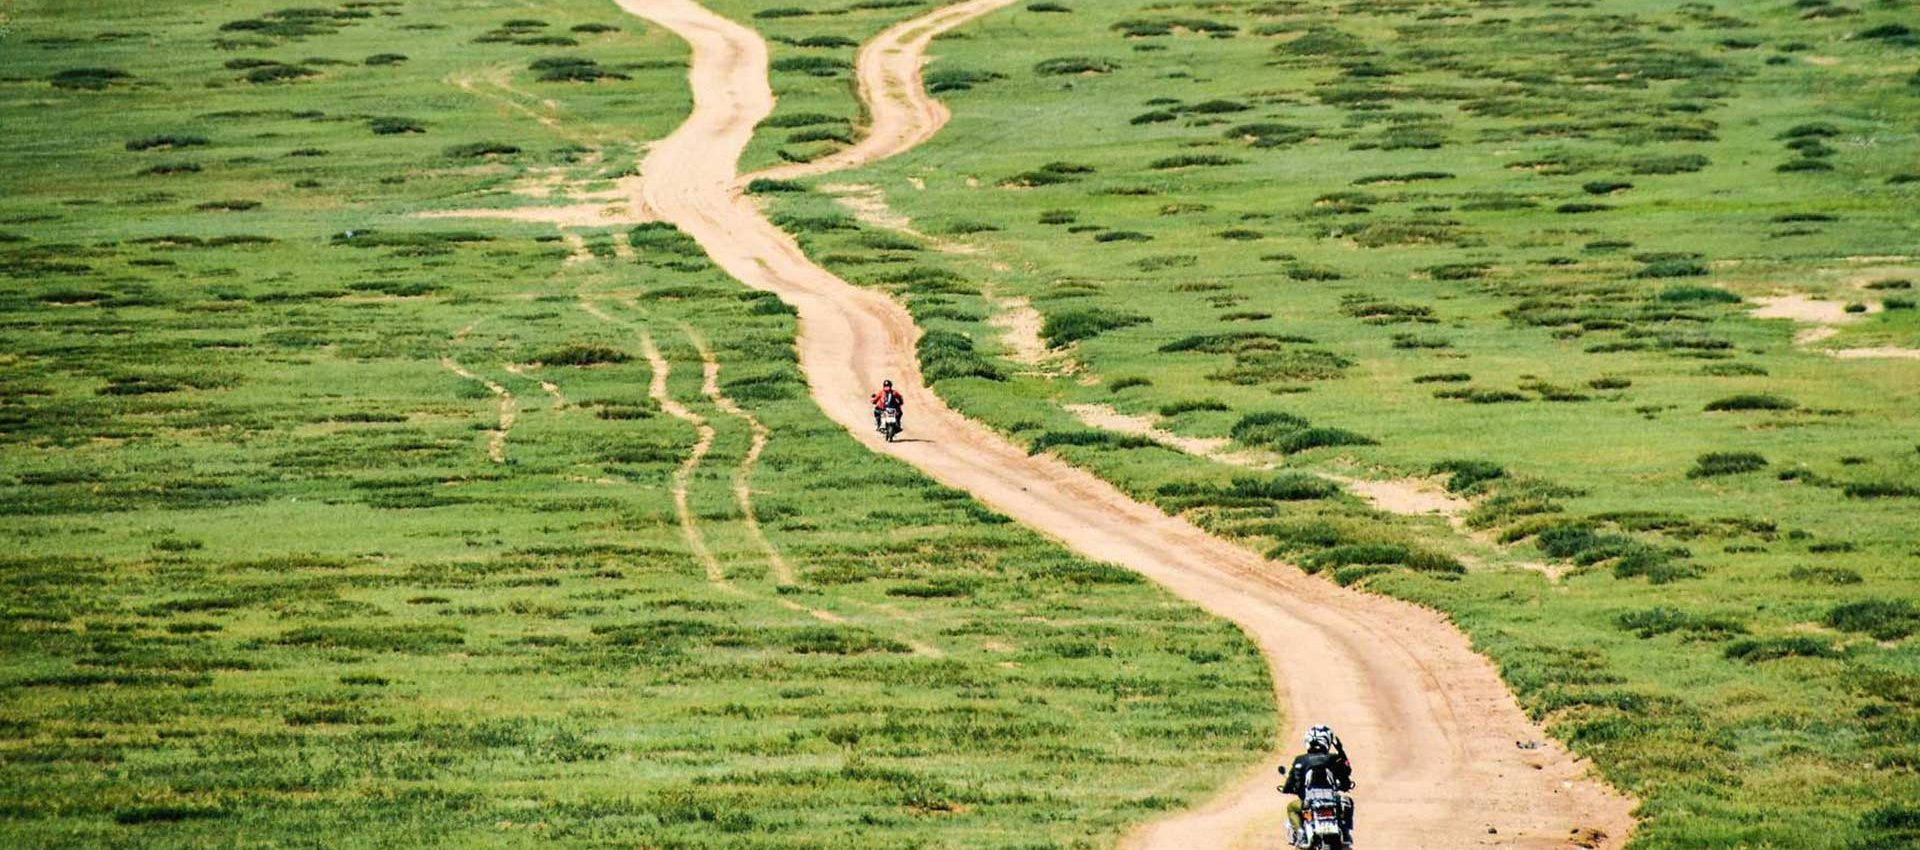 Probably the best off-road terrain in the world is in Mongolia, the vast Steppe has endless options to ride on.